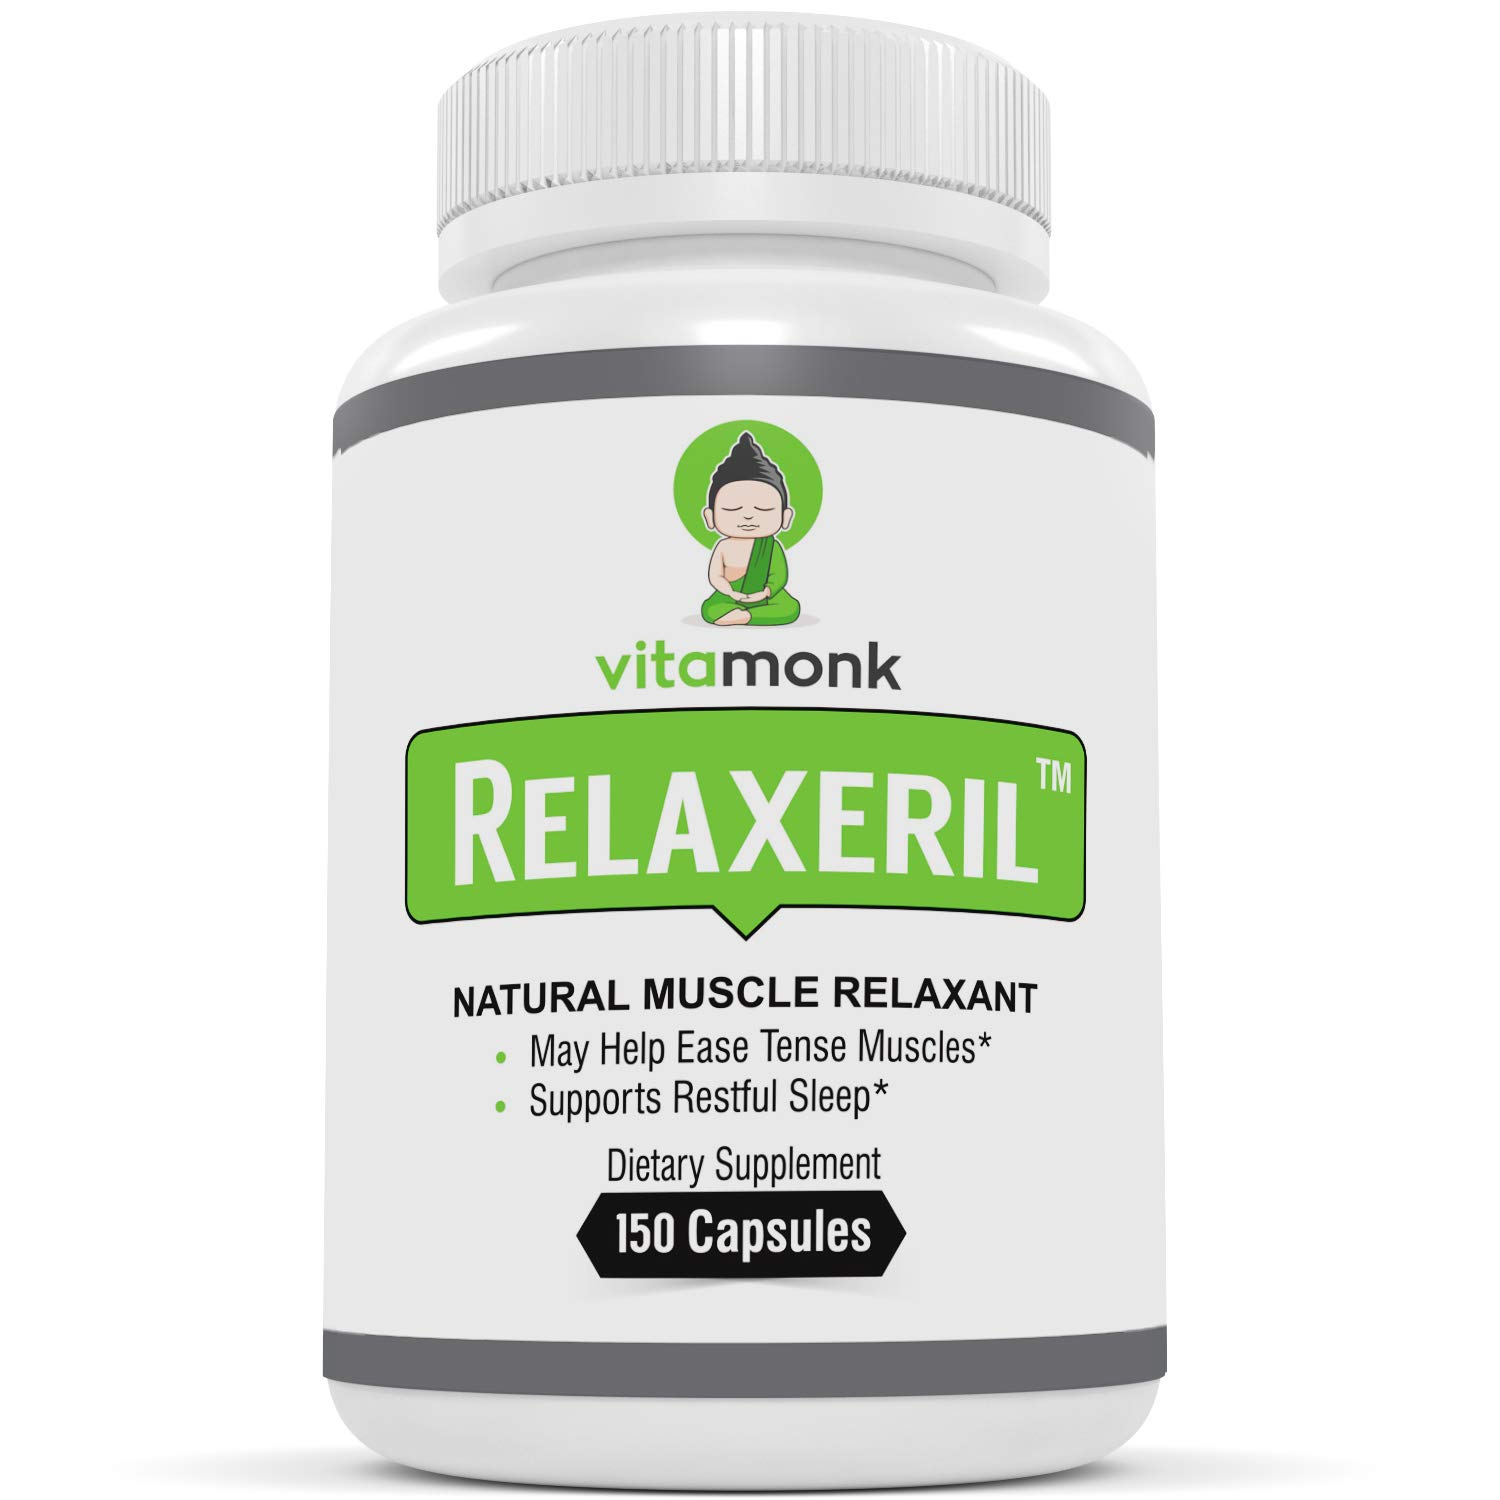 RELAXERIL - #1 Most Trusted Muscle Relaxers By VitaMonk - Support Sore Muscles And Muscle Spasms With This Muscle Relaxer Supplement- No artificial fillers